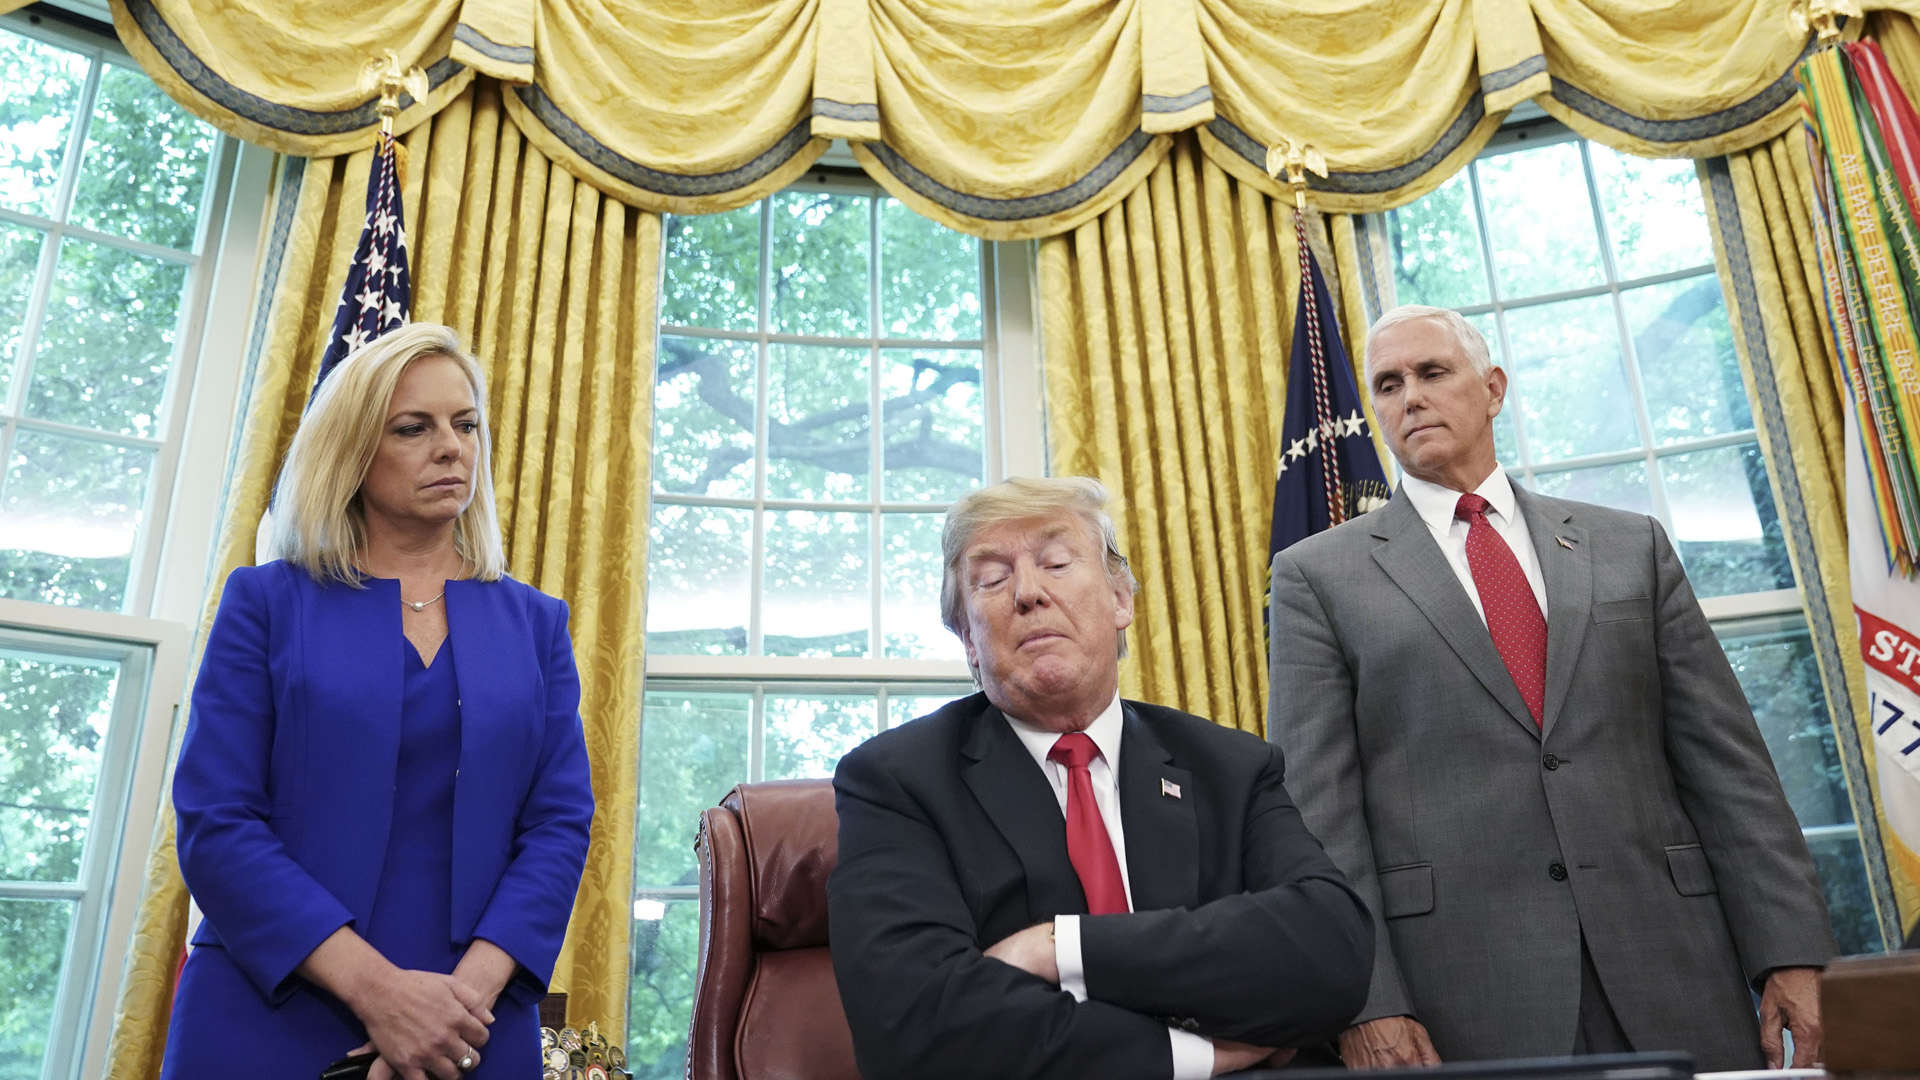 """Watched by Homeland Security Secretary Kirstjen Nielsen (L) and Vice President Mike Pence, US President Donald Trump signs an executive order on immigration in the Oval Office of the White House on June 20, 2018 in Washington, DC. - US President Donald Trump on Wednesday signed an executive order aimed at putting an end to the controversial separation of migrant families at the border, reversing a harsh practice that had earned international scorn.""""It's about keeping families together,"""" Trump said at the signing ceremony. """"I did not like the sight of families being separated,"""" he added. (Photo by Mandel Ngan / AFP) (Photo credit should read MANDEL NGAN/AFP/Getty Images)"""